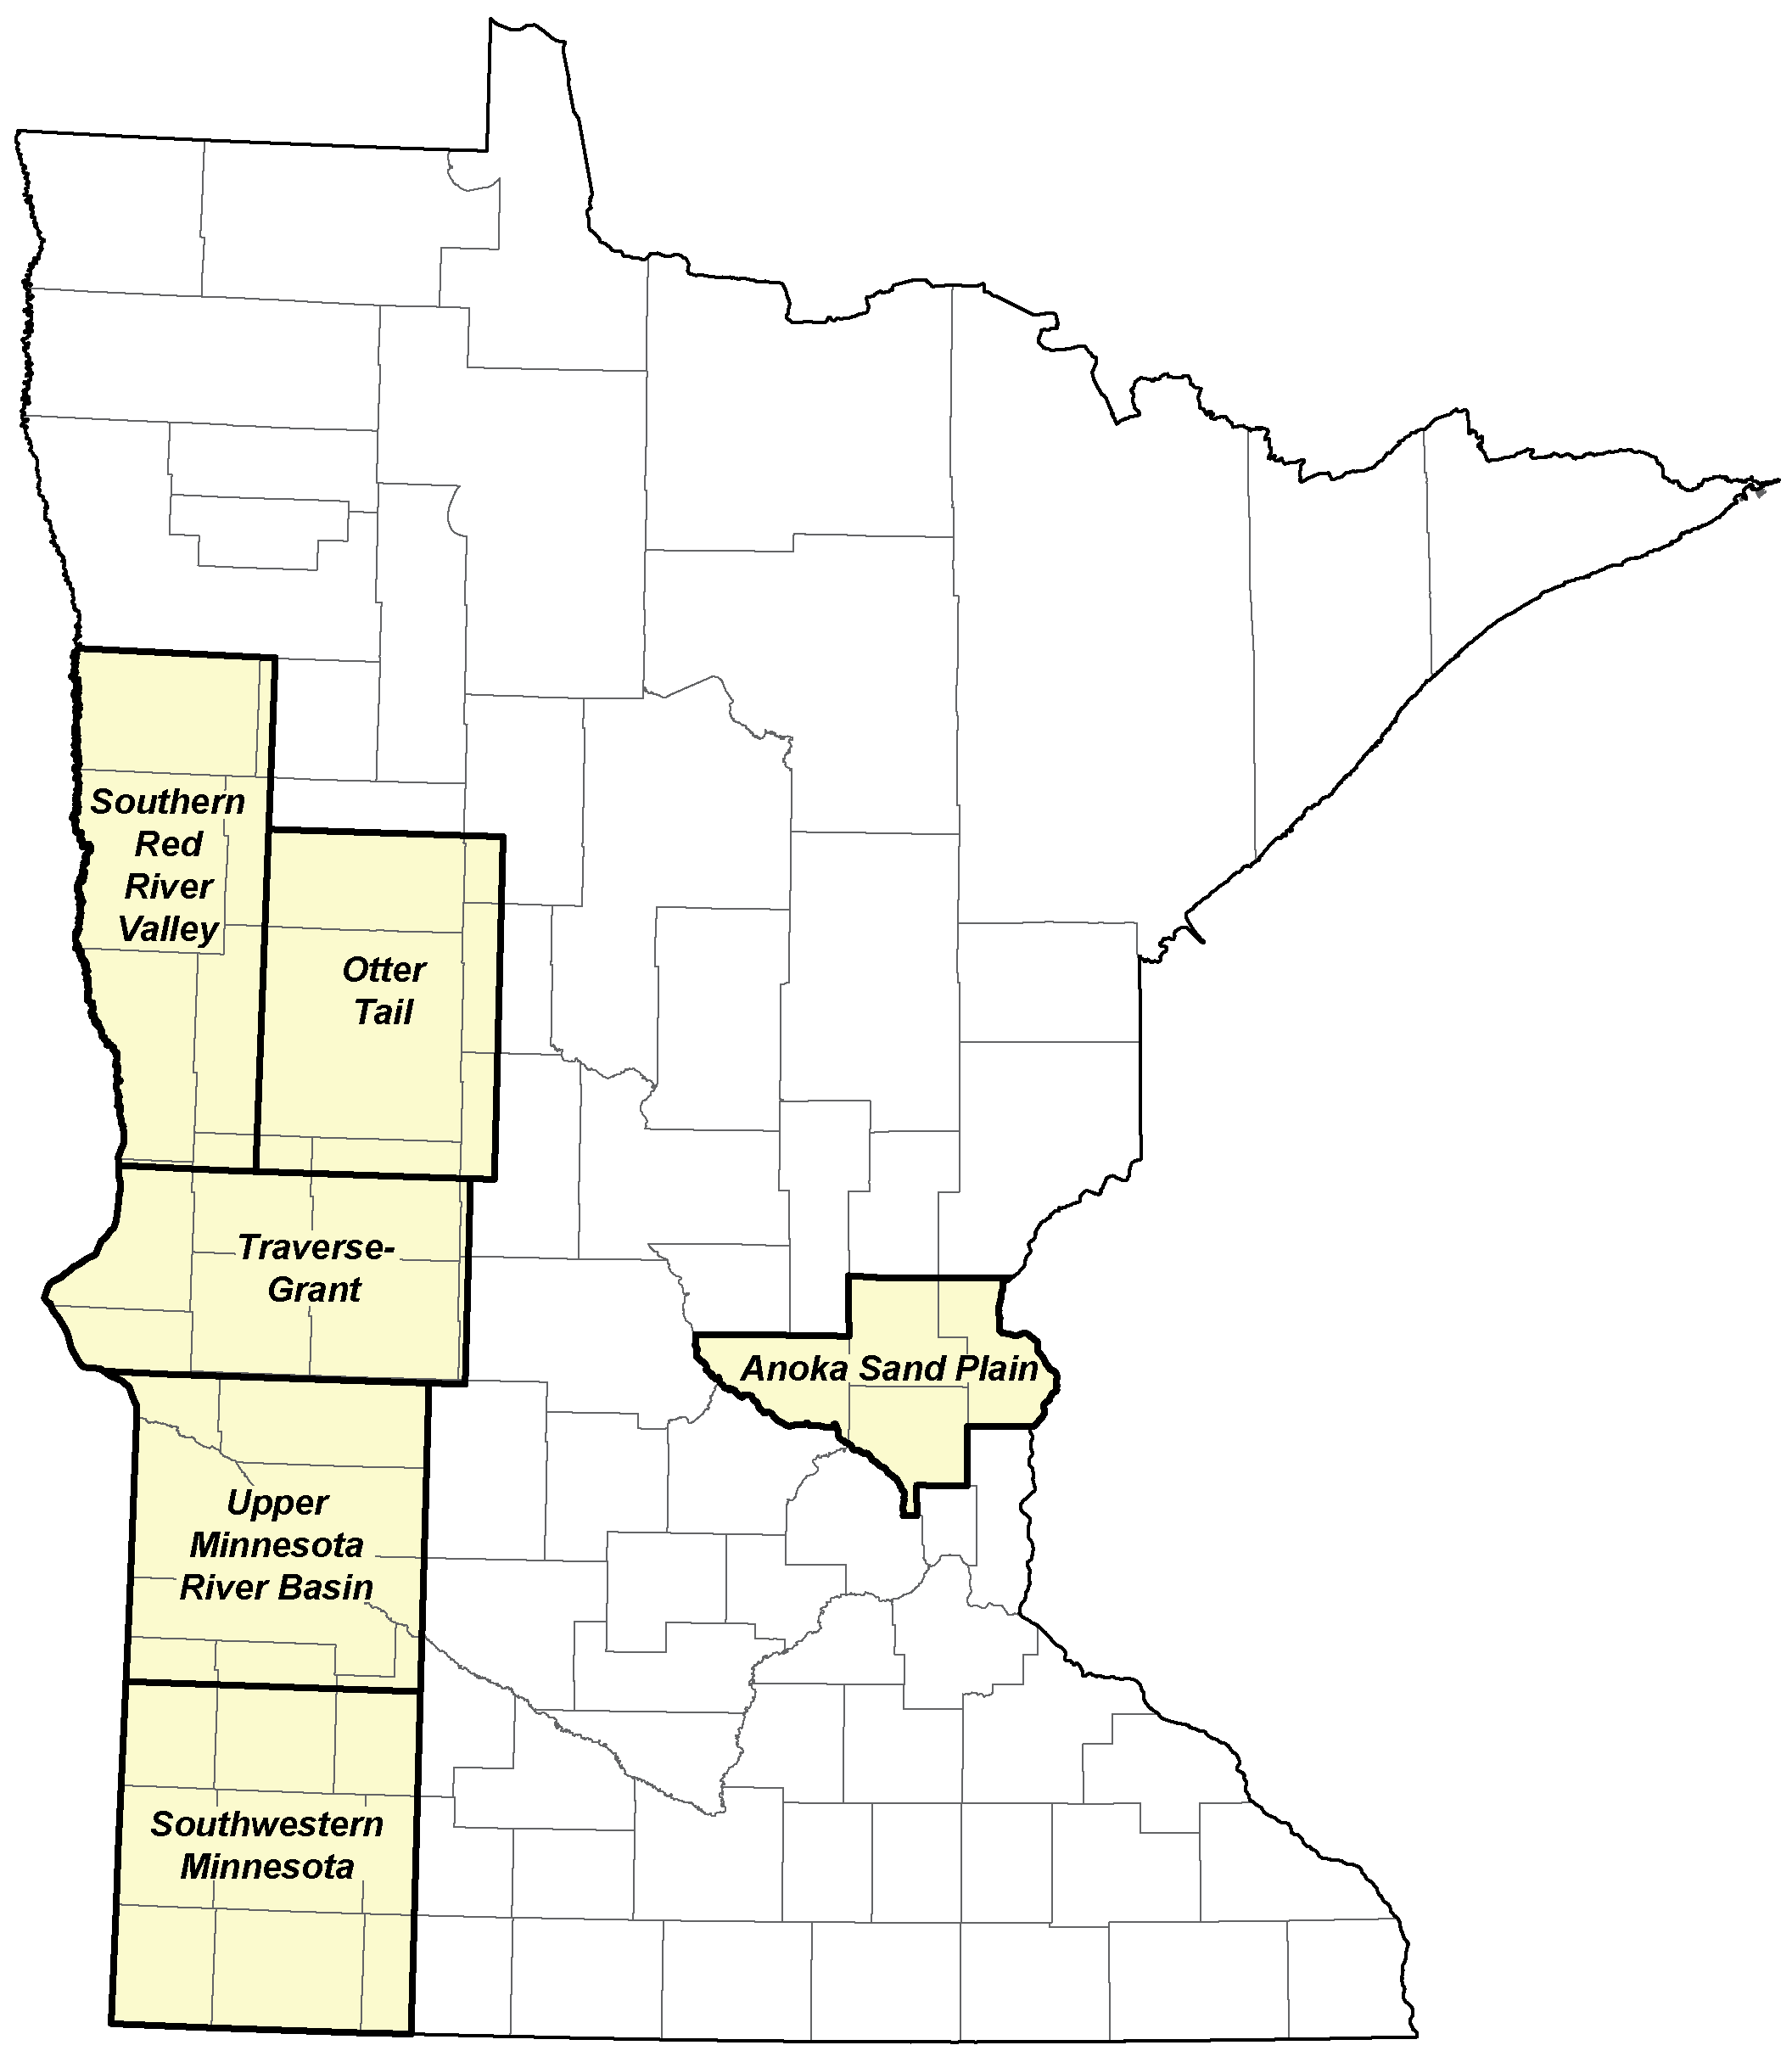 Minnesota map of hydrogeologic assessment areas